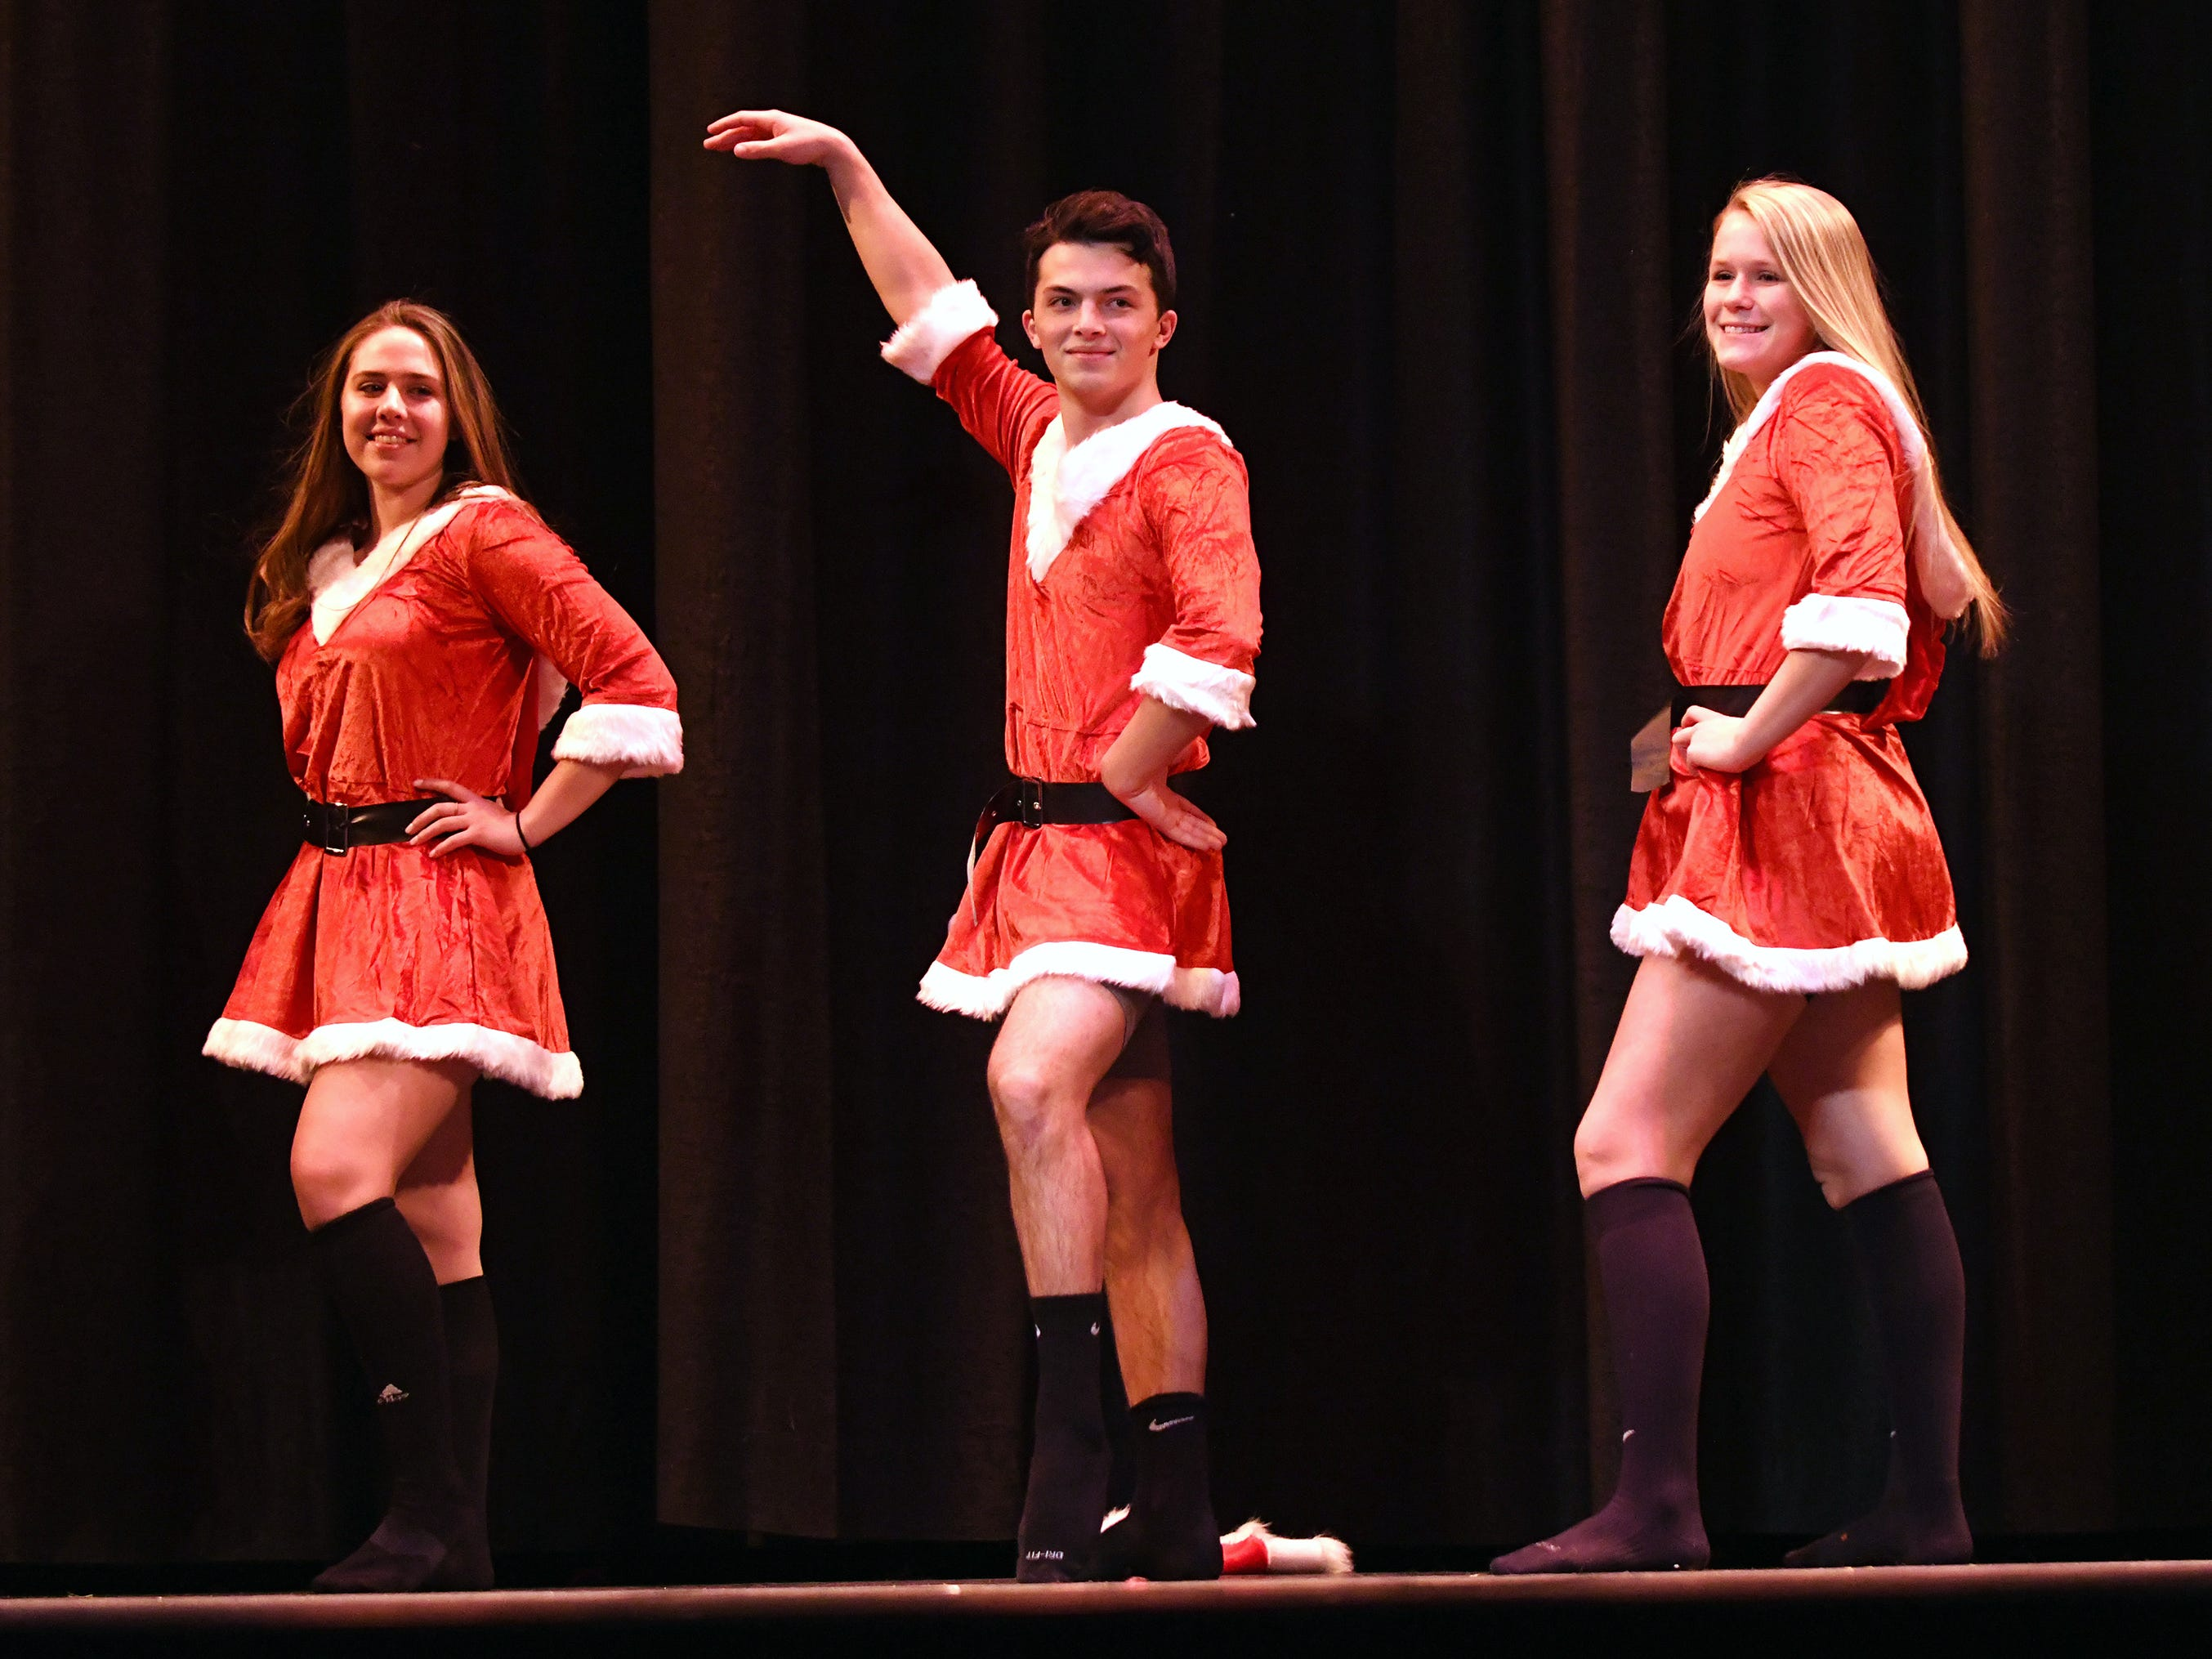 Camron Stahl (center) performs during the talent portion of Mr. Vineland 2019 at Vineland High School on Thursday, January 10.